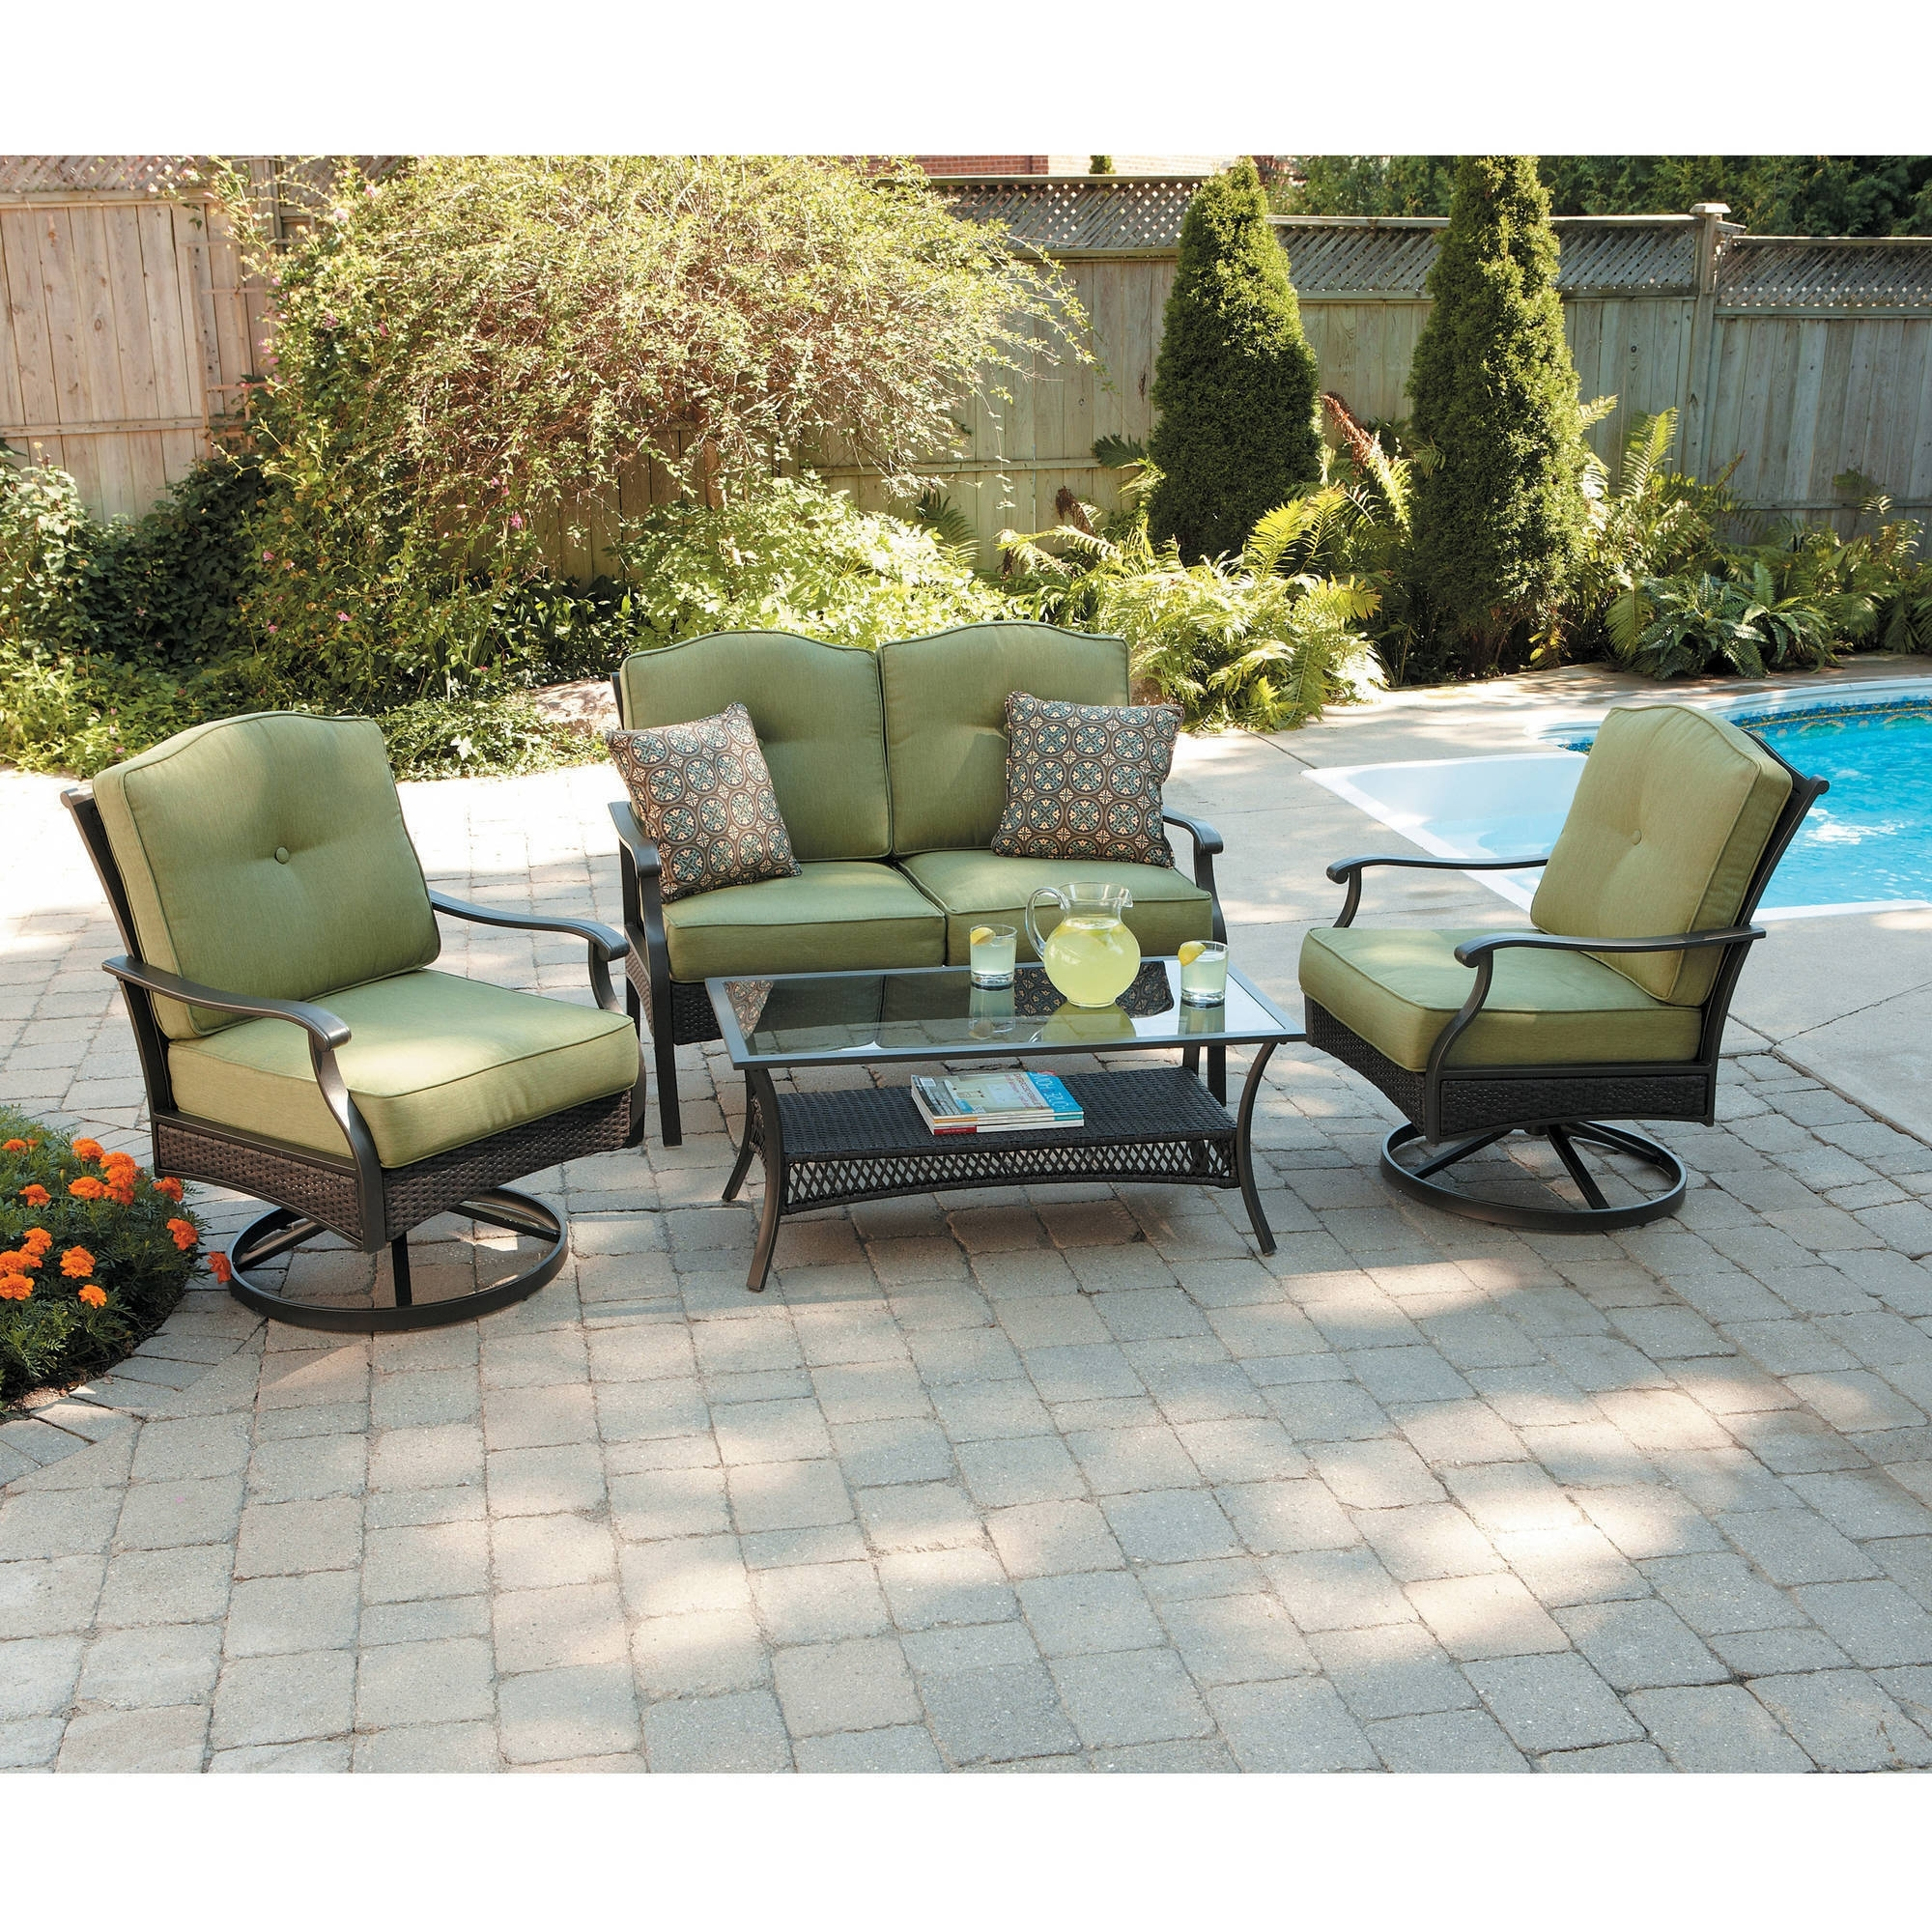 Patio Conversation Sets With Storage In Popular Better Homes And Gardens Providence 4 Piece Patio Conversation Set (View 10 of 15)